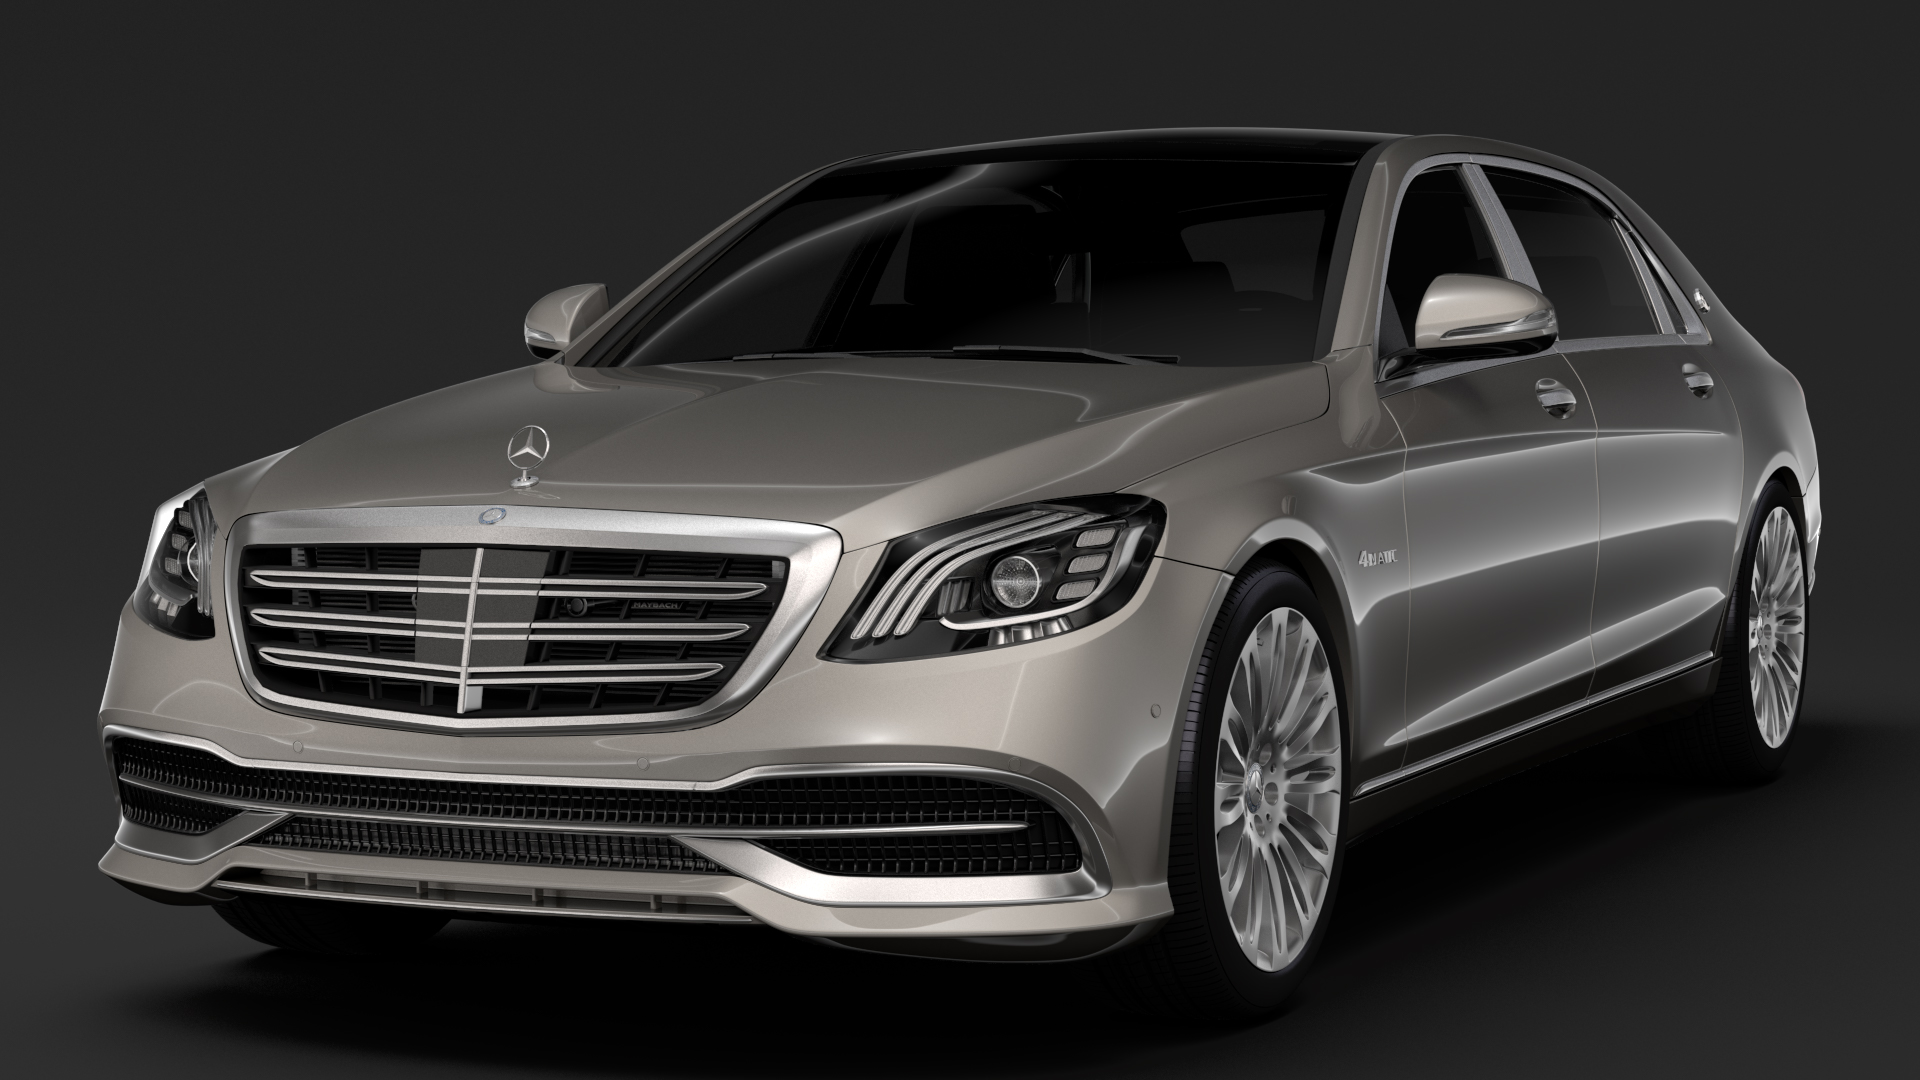 mercedes maybach s 560 4matic x222 2018 3d model 3ds max fbx c4d lwo ma mb hrc xsi obj 284428